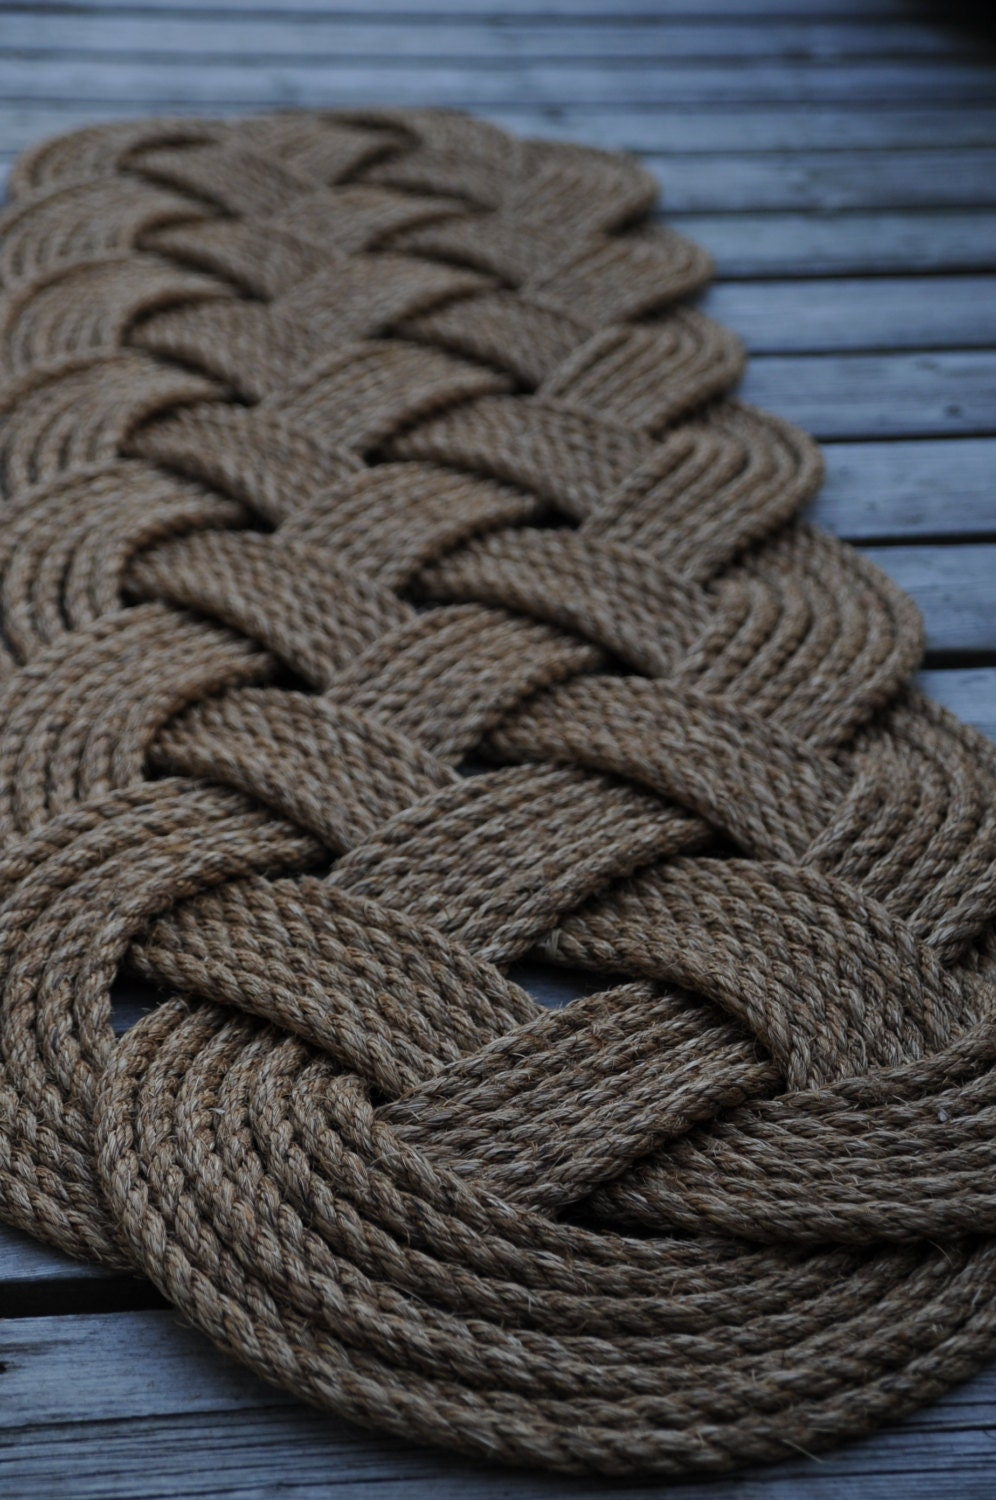 Larger rope rug nautical decor nautical rope rug patio for Rope carpet